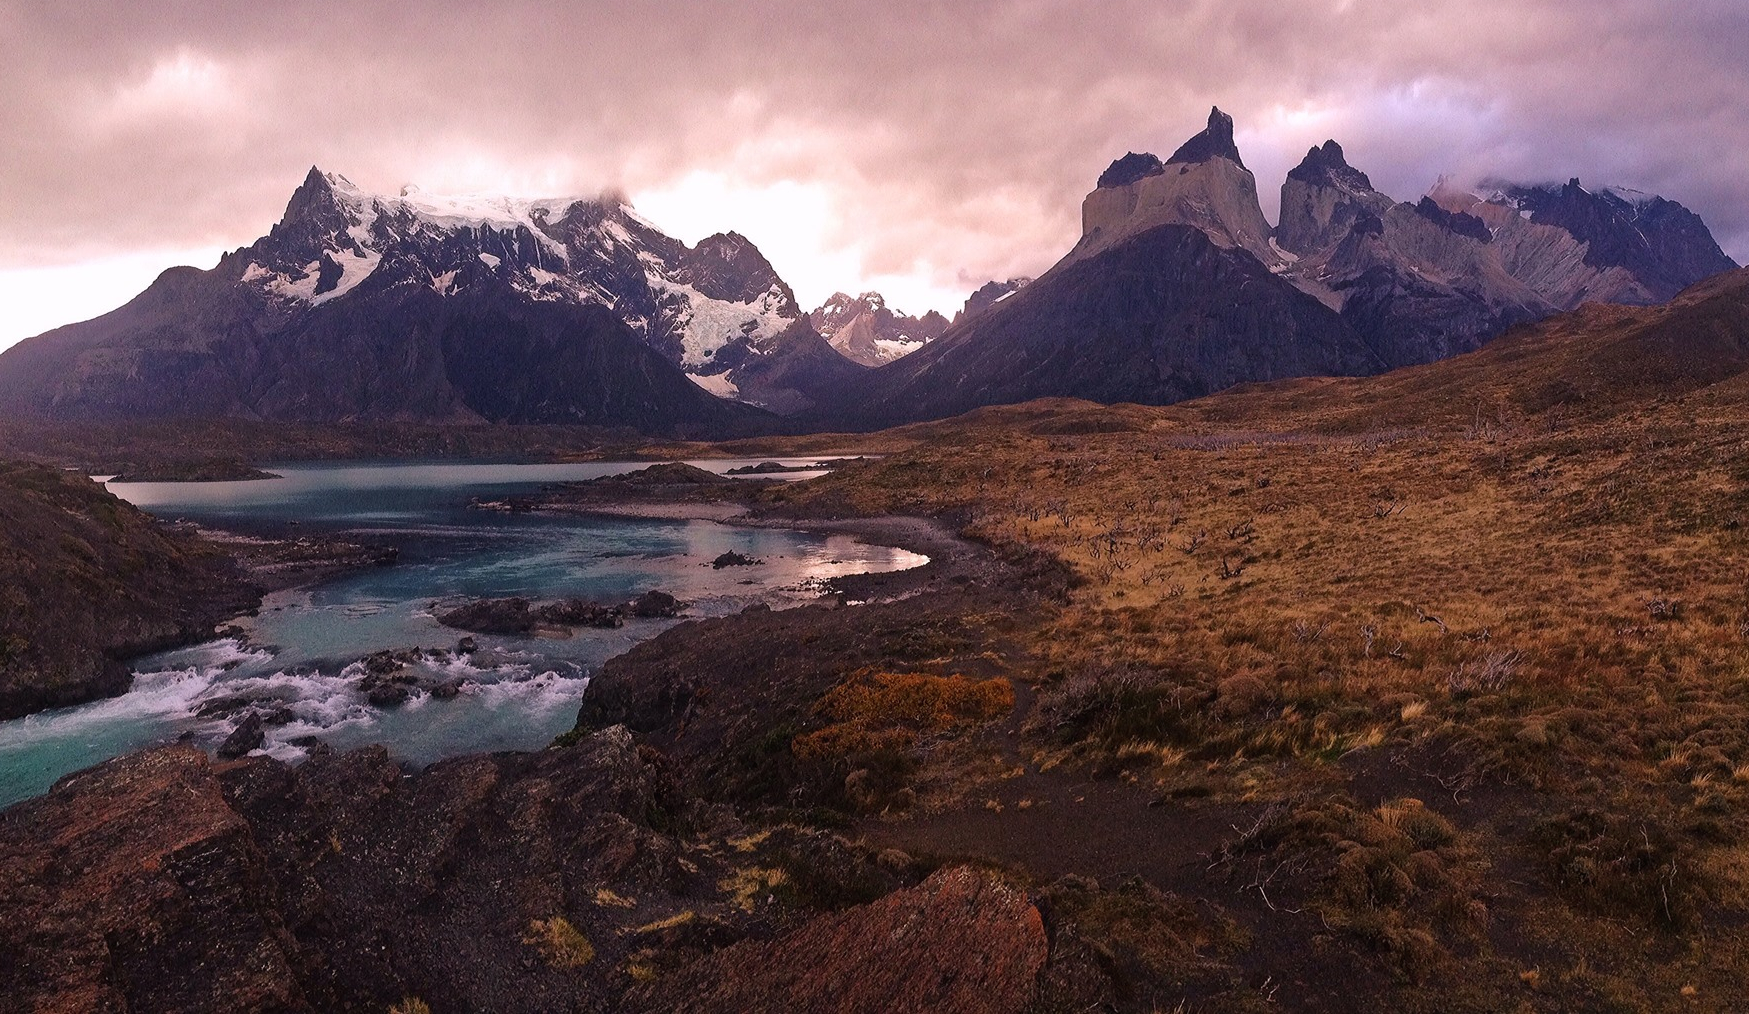 Parque Nacional Torre sdel Pain, Chile by Ian Oechsle